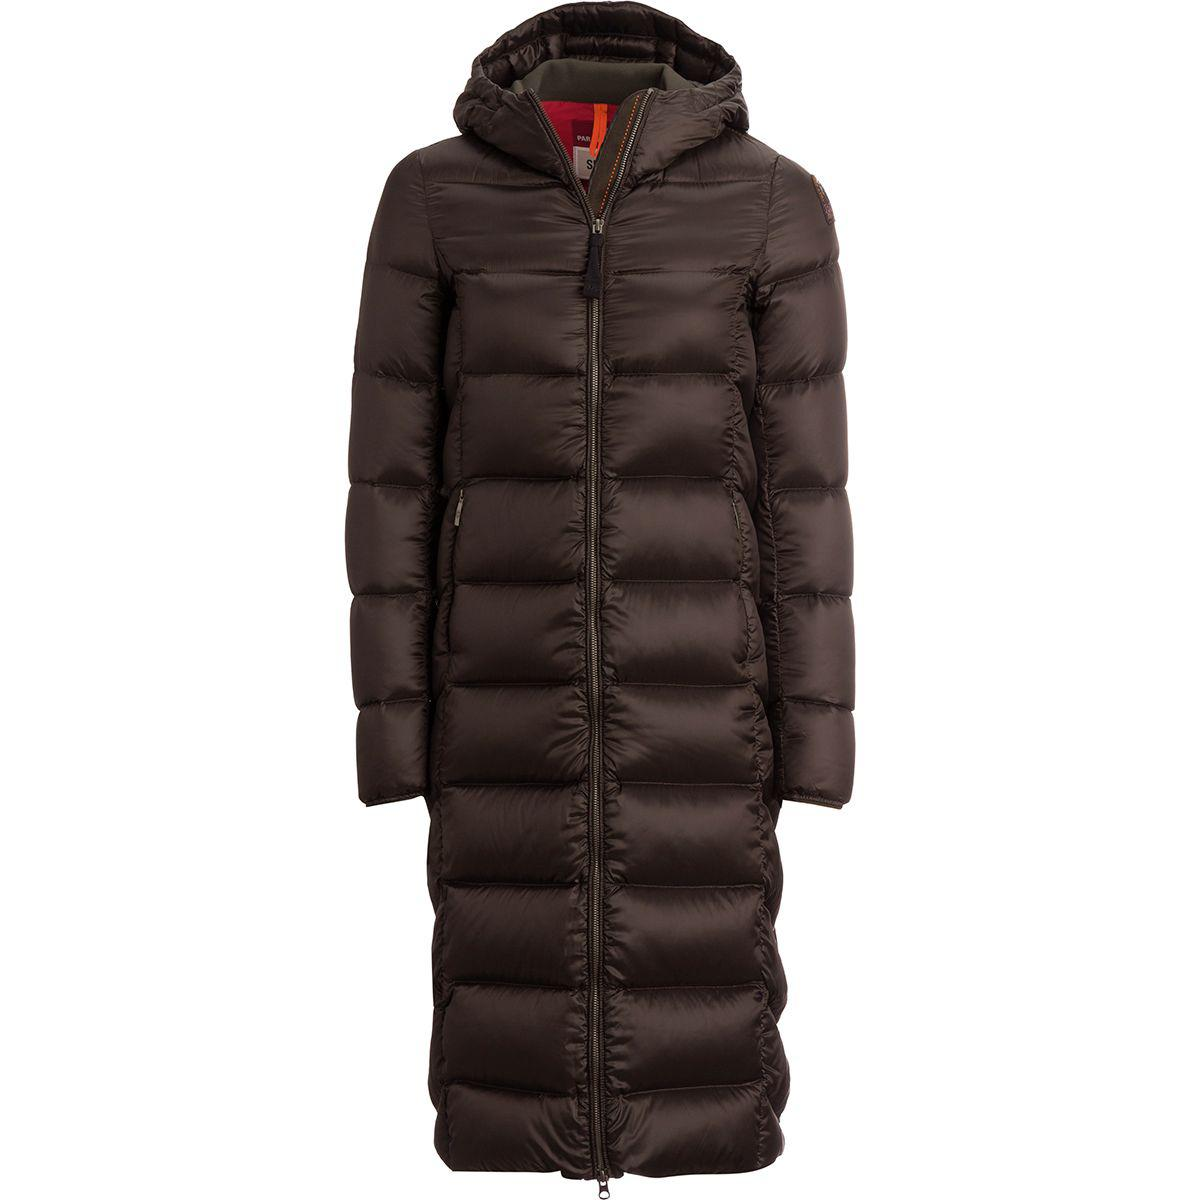 Parajumpers. Women's Brown Leah Down Jacket